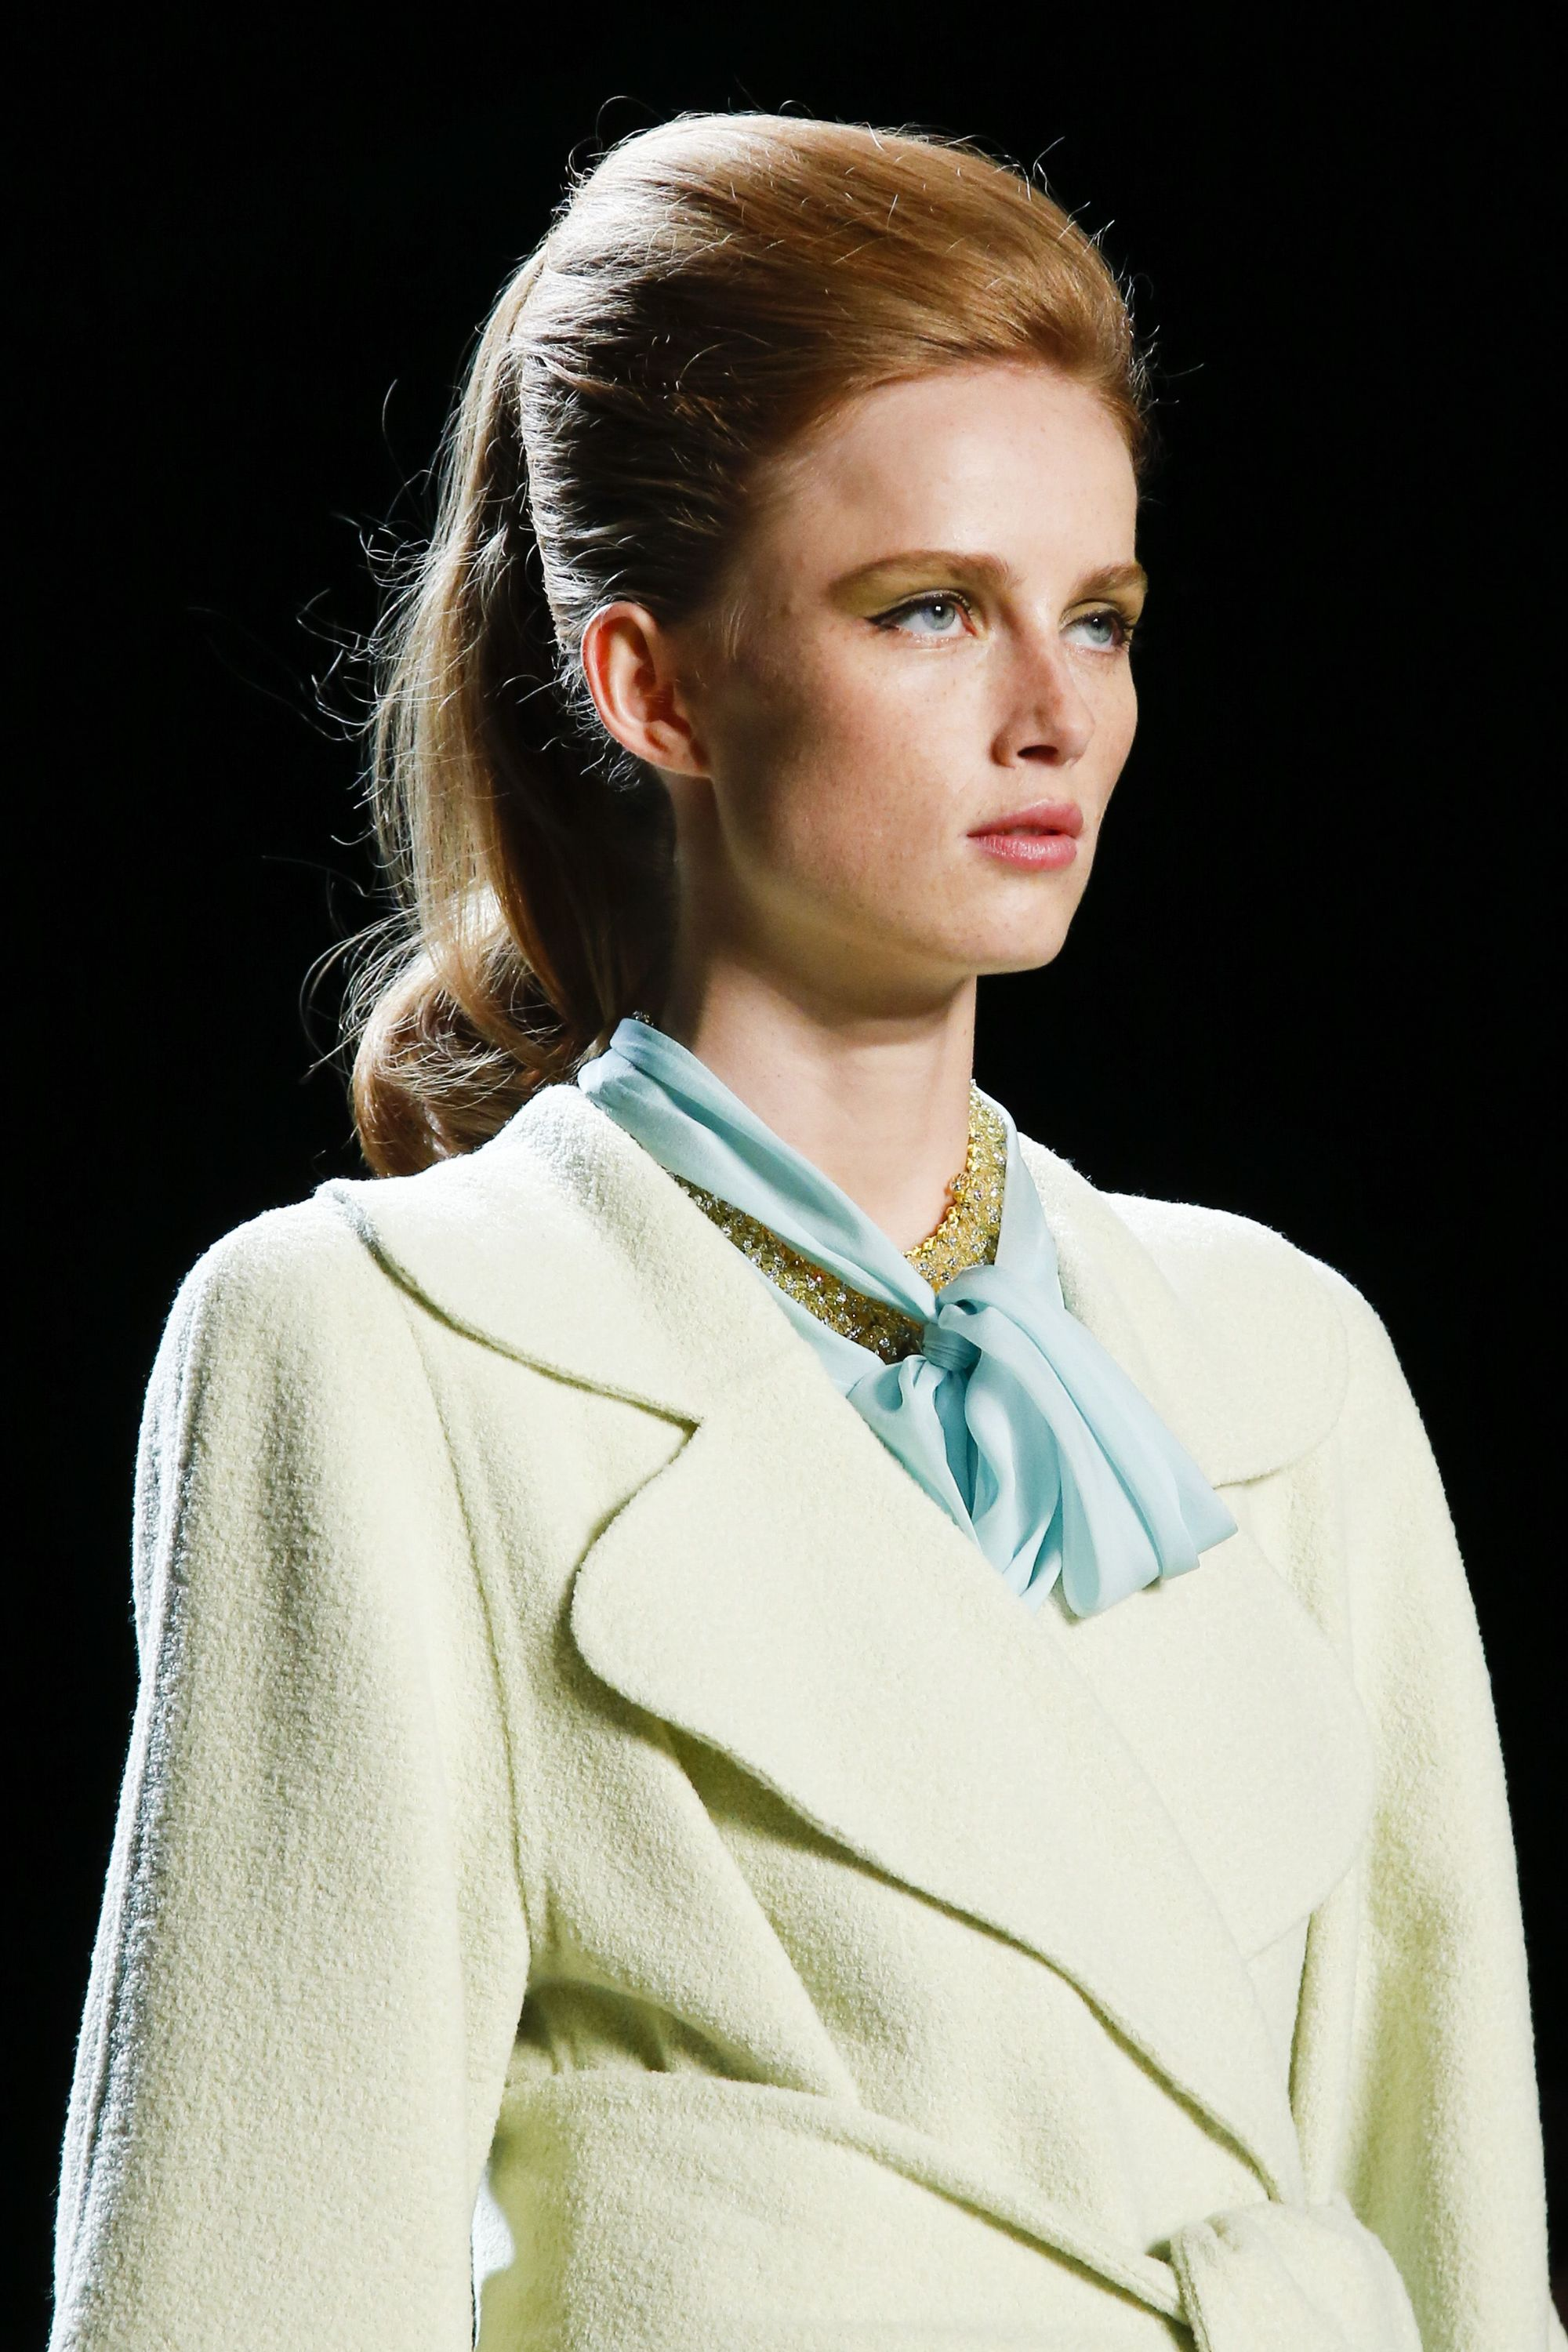 NYFW SS19: Close up shot of a model on the Marc Jacobs runway with dirty blonde long hair styled into a retro-inspired bouffant ponytail, wearing a jacket and a neckerchief